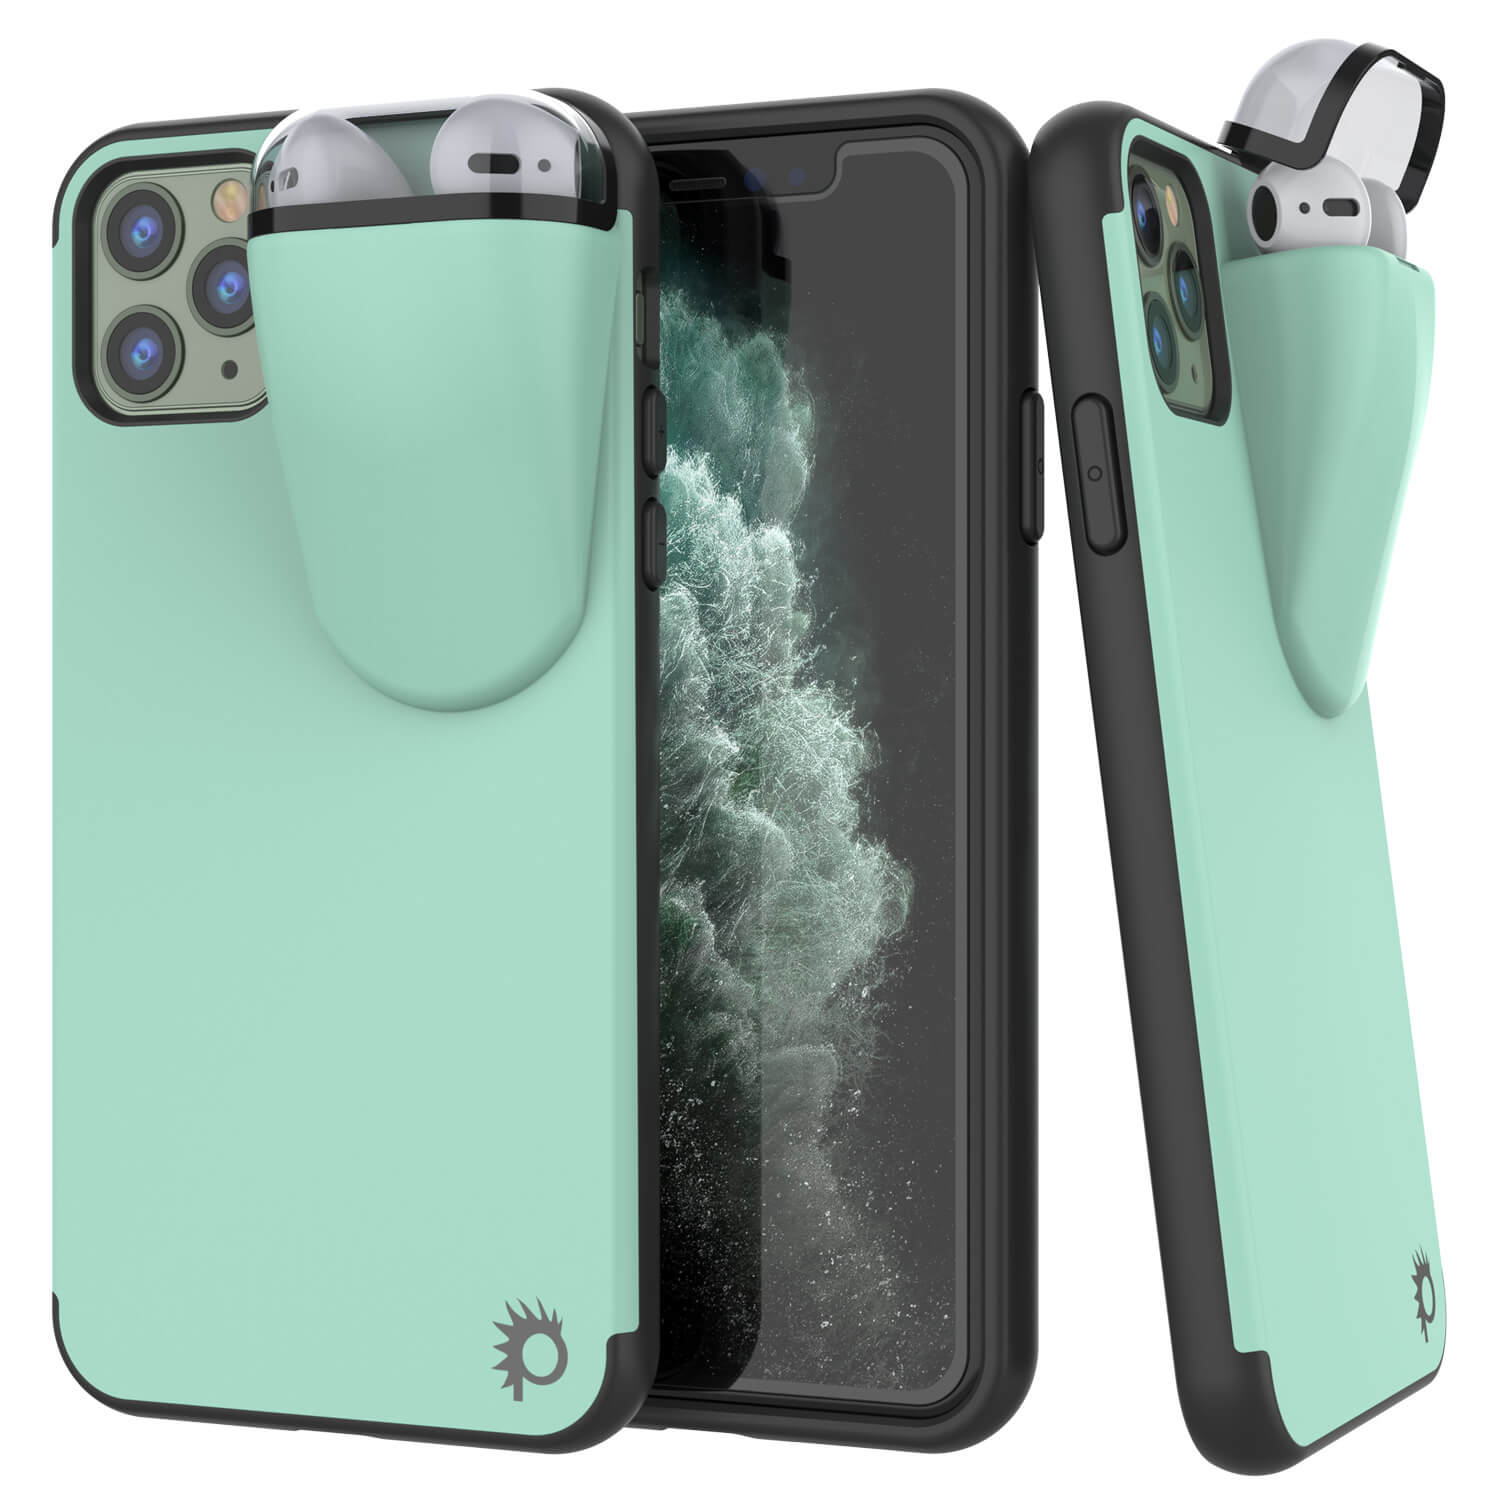 "Punkcase iPhone 11 Pro Airpods Case Holder (TopPods Series) | Slim & Durable 2 in 1 Cover Designed for iPhone 11 Pro (6.1"") 